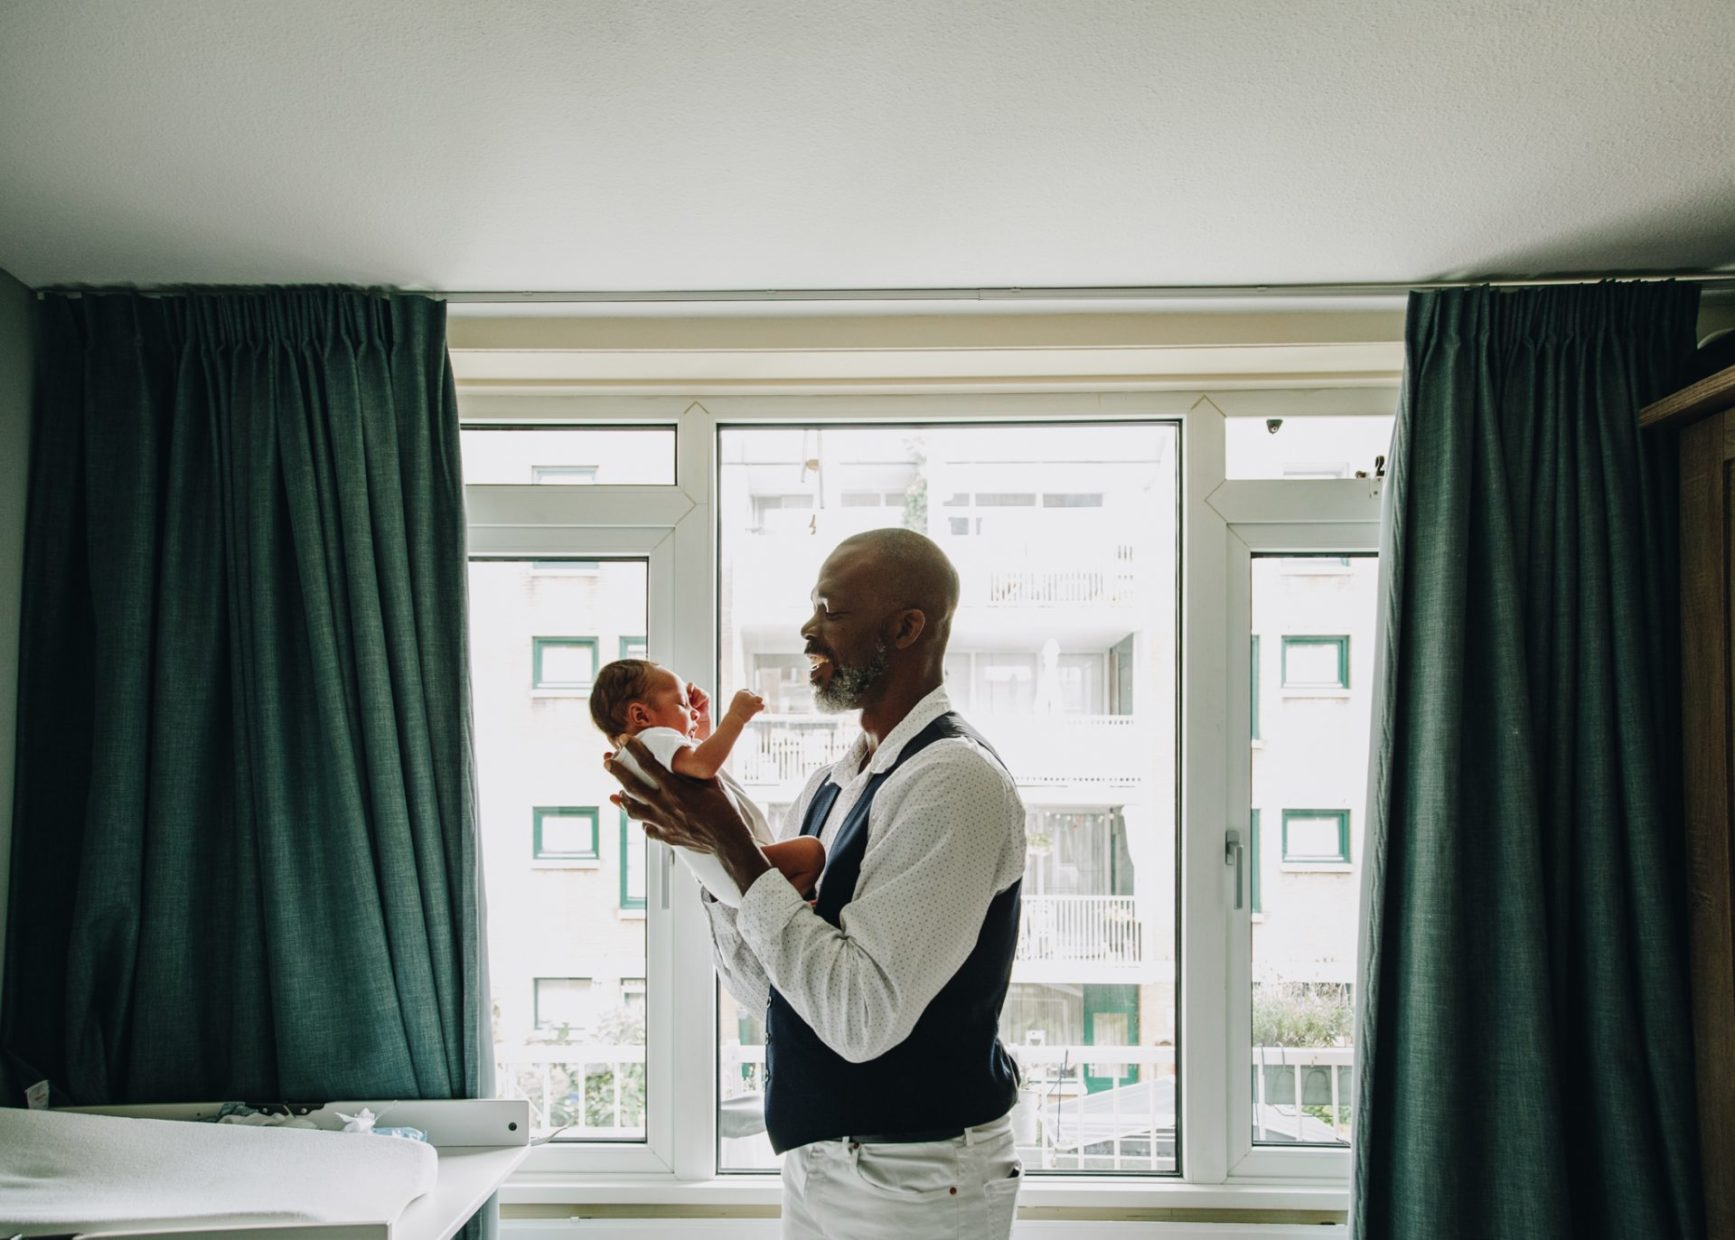 Backlighting. Dad holding his newborn baby next to the window.